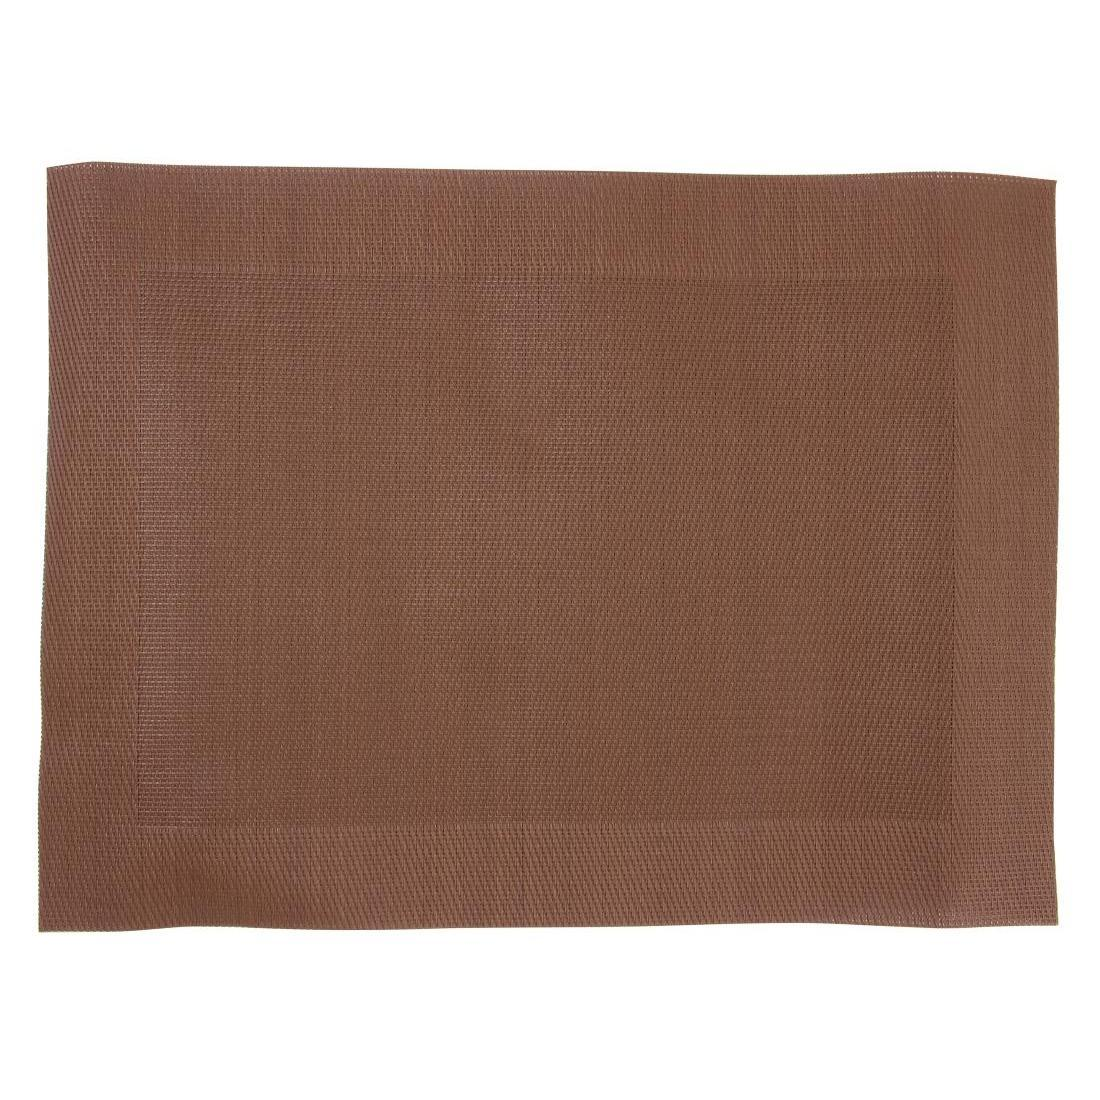 Woven PVC Brown Table Mat